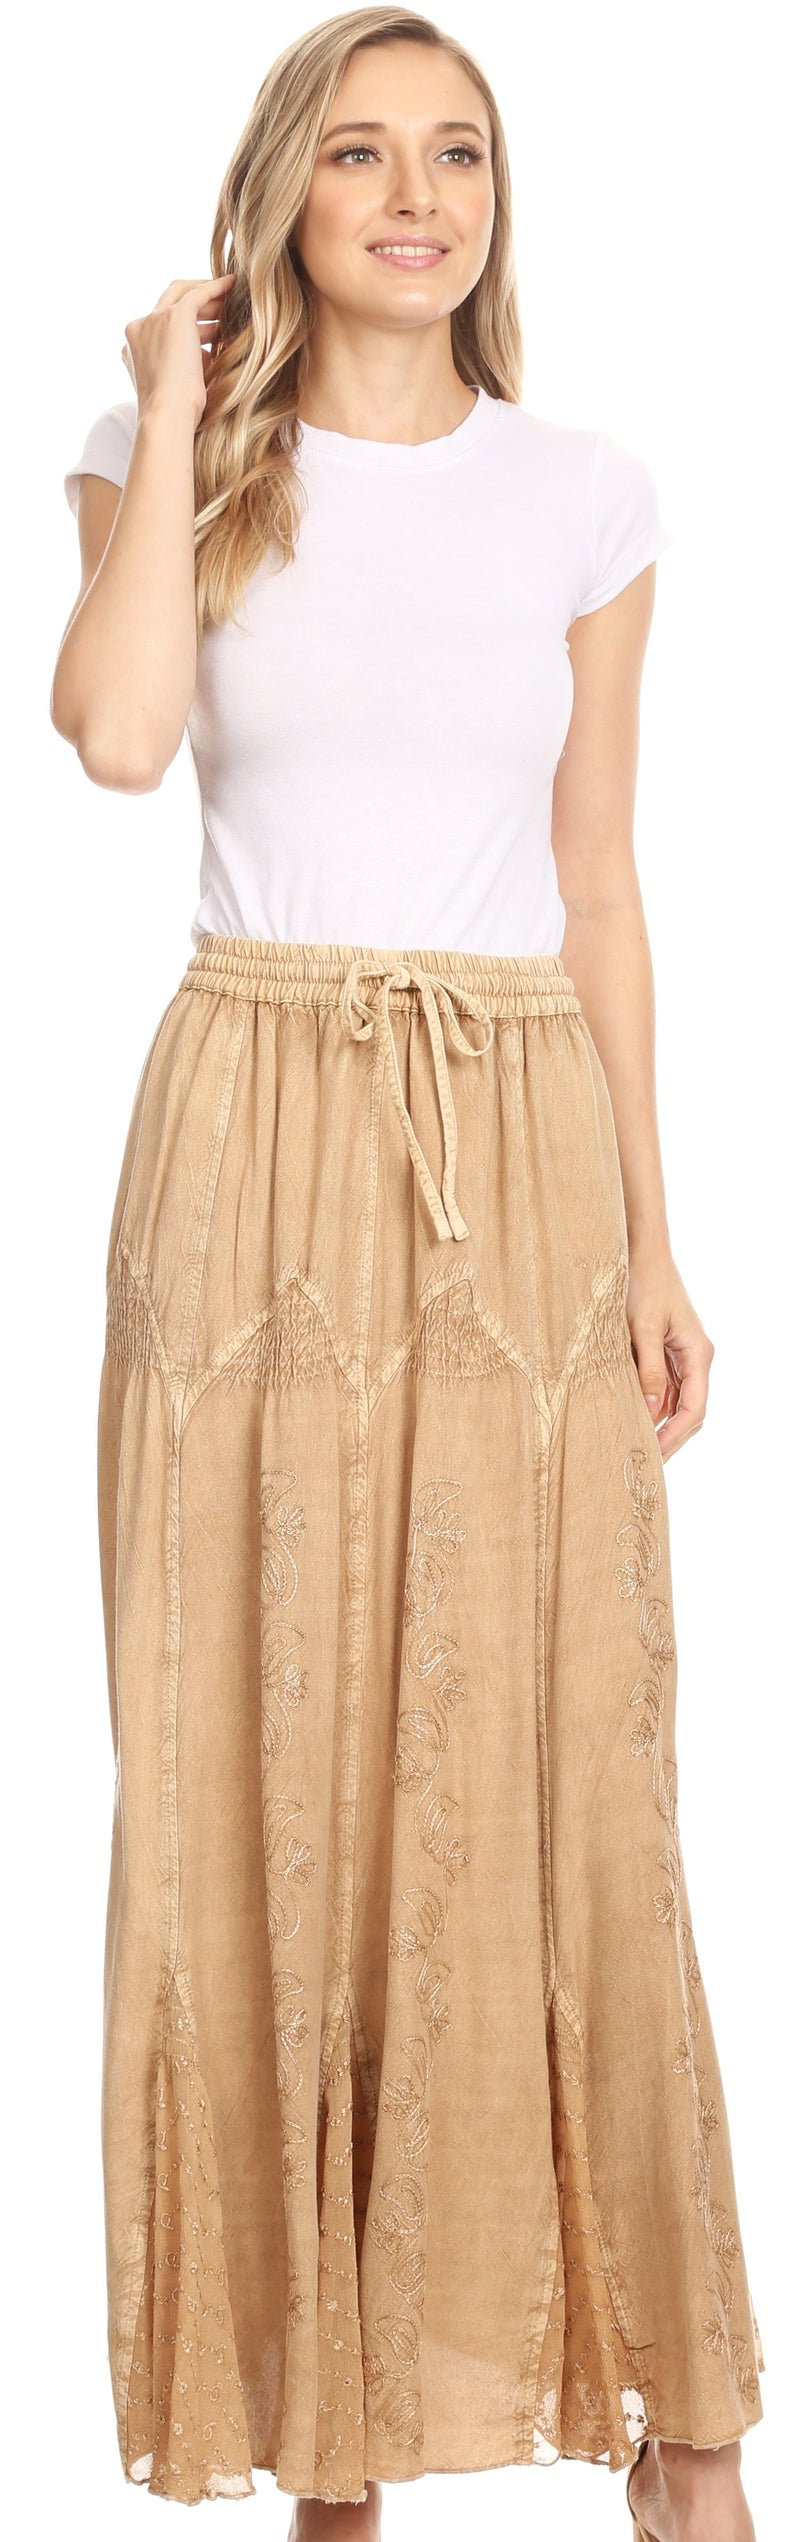 Sakkas Olivia Womens Maxi Bohemian Gypsy Long Skirt With Elastic Waist and Lace